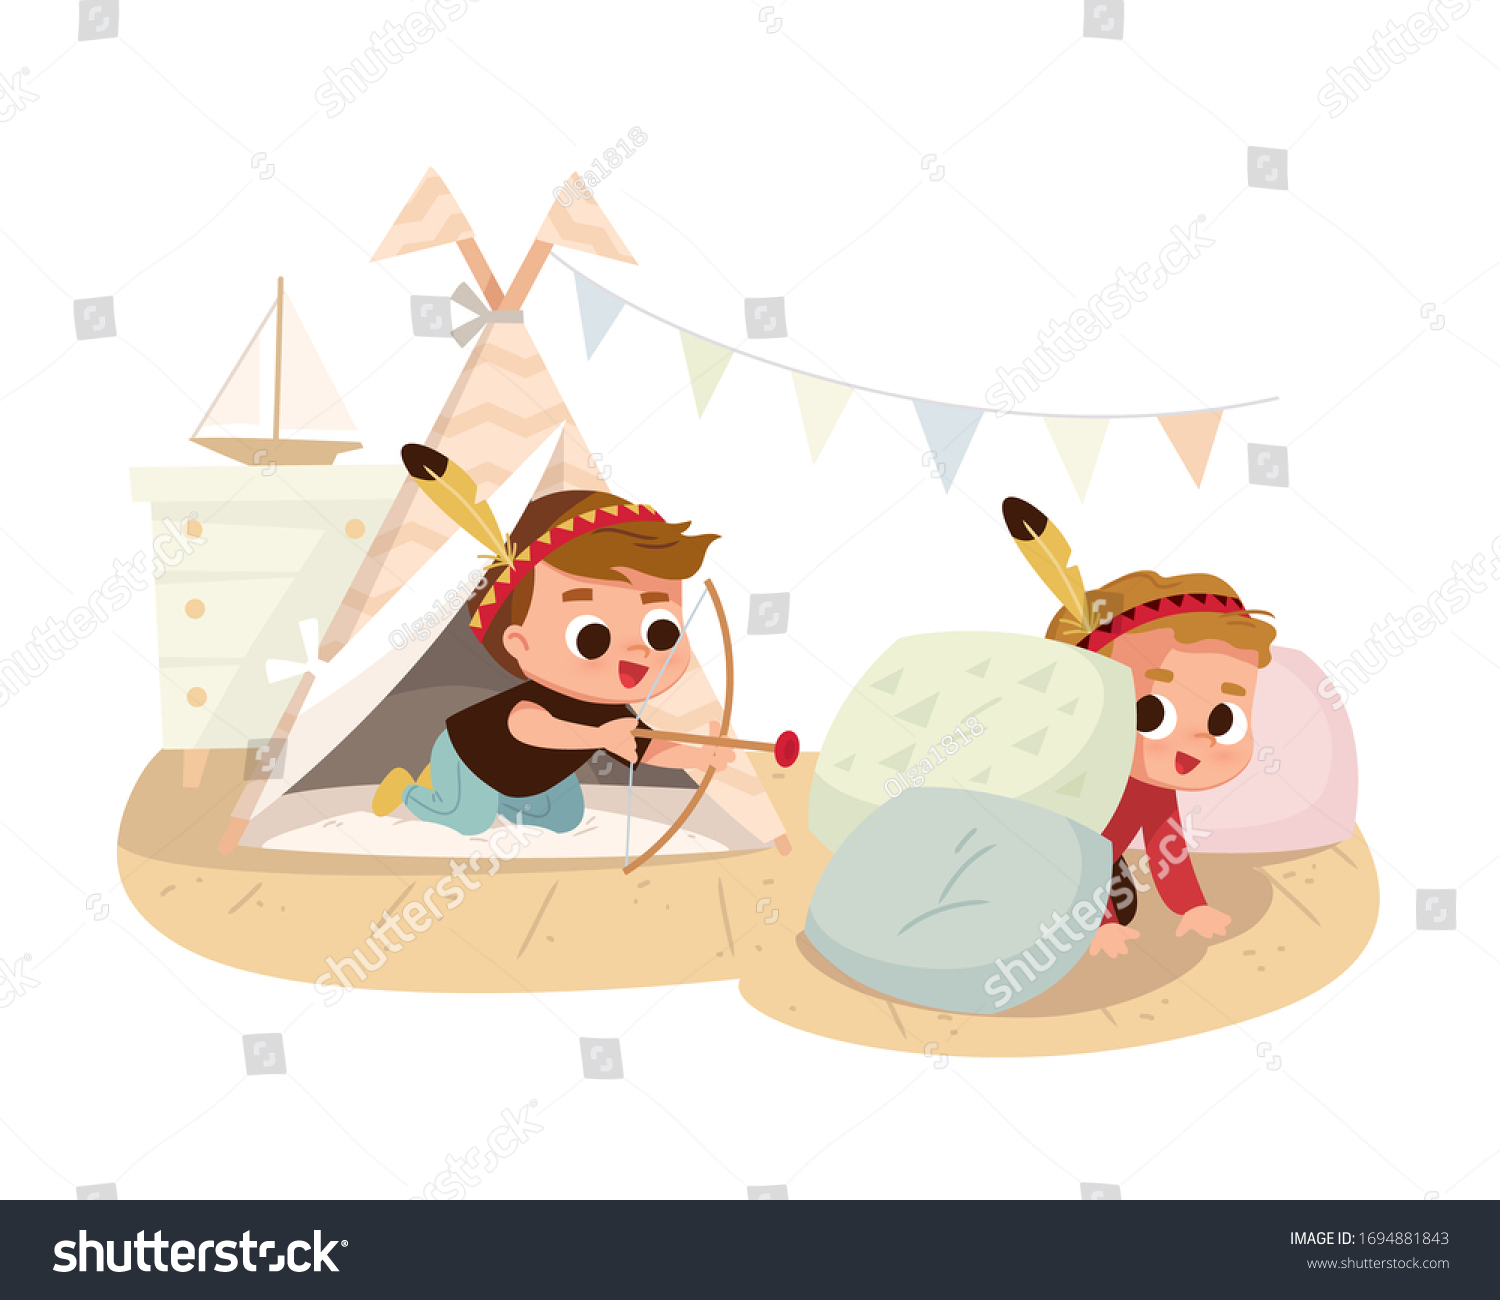 Two Boys Play Home Native American Stock Vector Royalty Free 1694881843